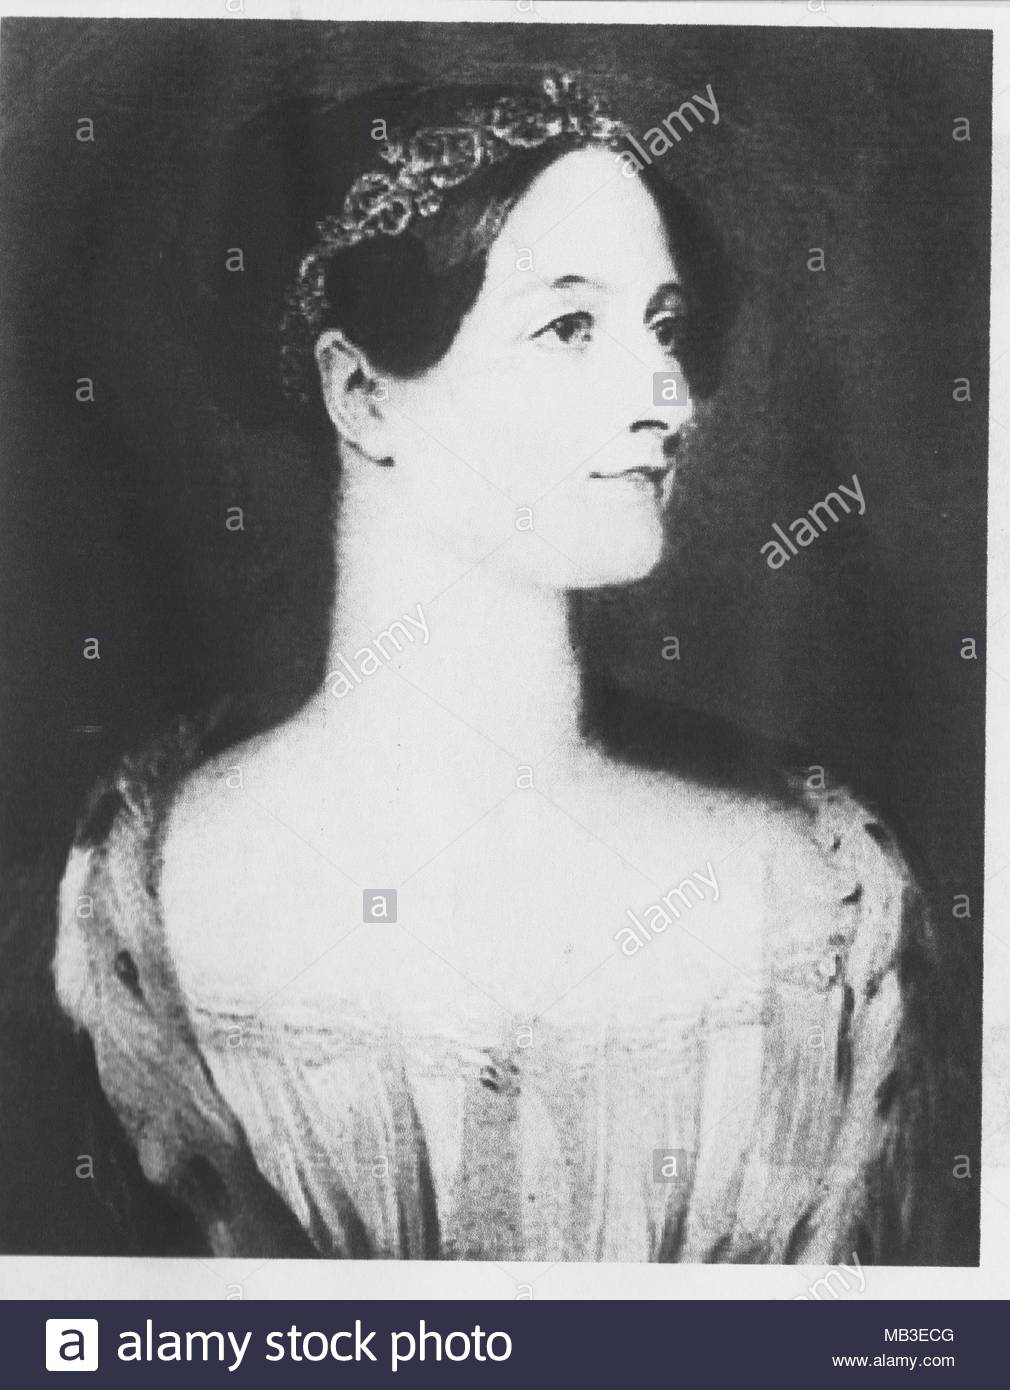 Ada Lovelace (Augusta Ada King-Noel, Countess of Lovelace (10 December 1815 – 27 November 1852), an English mathematician and writer known for her work on Charles Babbage's proposed mechanical general-purpose computer, the Analytical Engine. She was the first to recognize that the machine had applications beyond pure calculation, and published the first algorithm intended to be carried out by such a machine. As a result, she is sometimes regarded as the first to recognize the full potential of a 'computing machine' and the first computer programmer.rrrrrrrrrrrrrrrrrrrrrrrrrrrrrrrrrrrrrrrrrrrrr - Stock Image